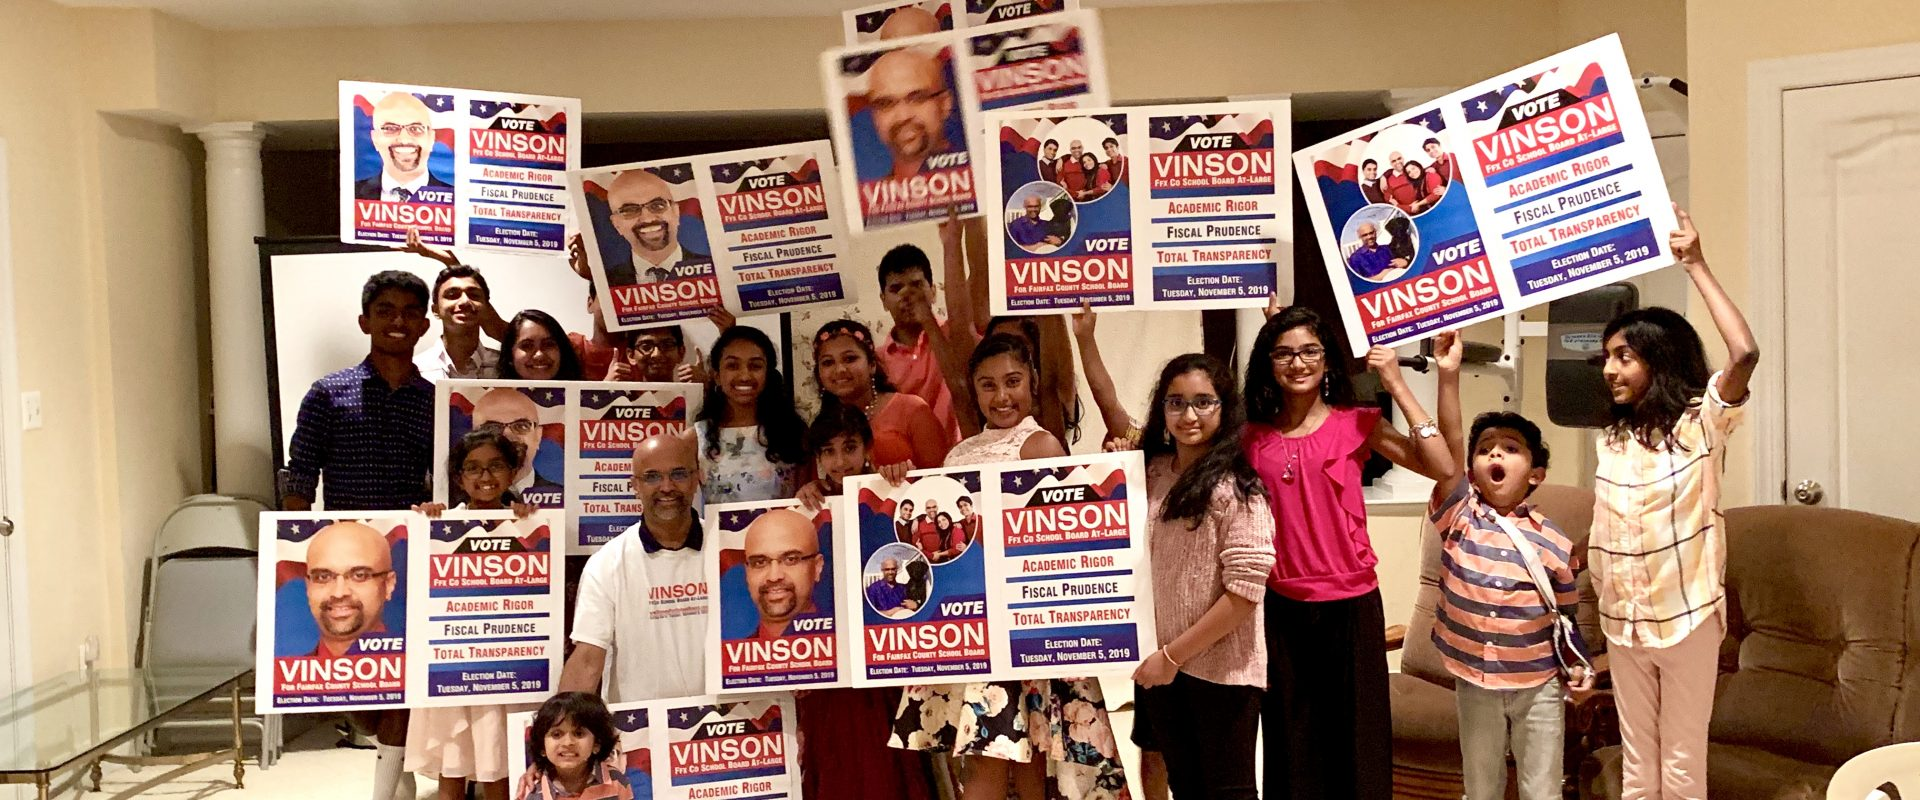 Vienna meeting for vinson for school board election 2019